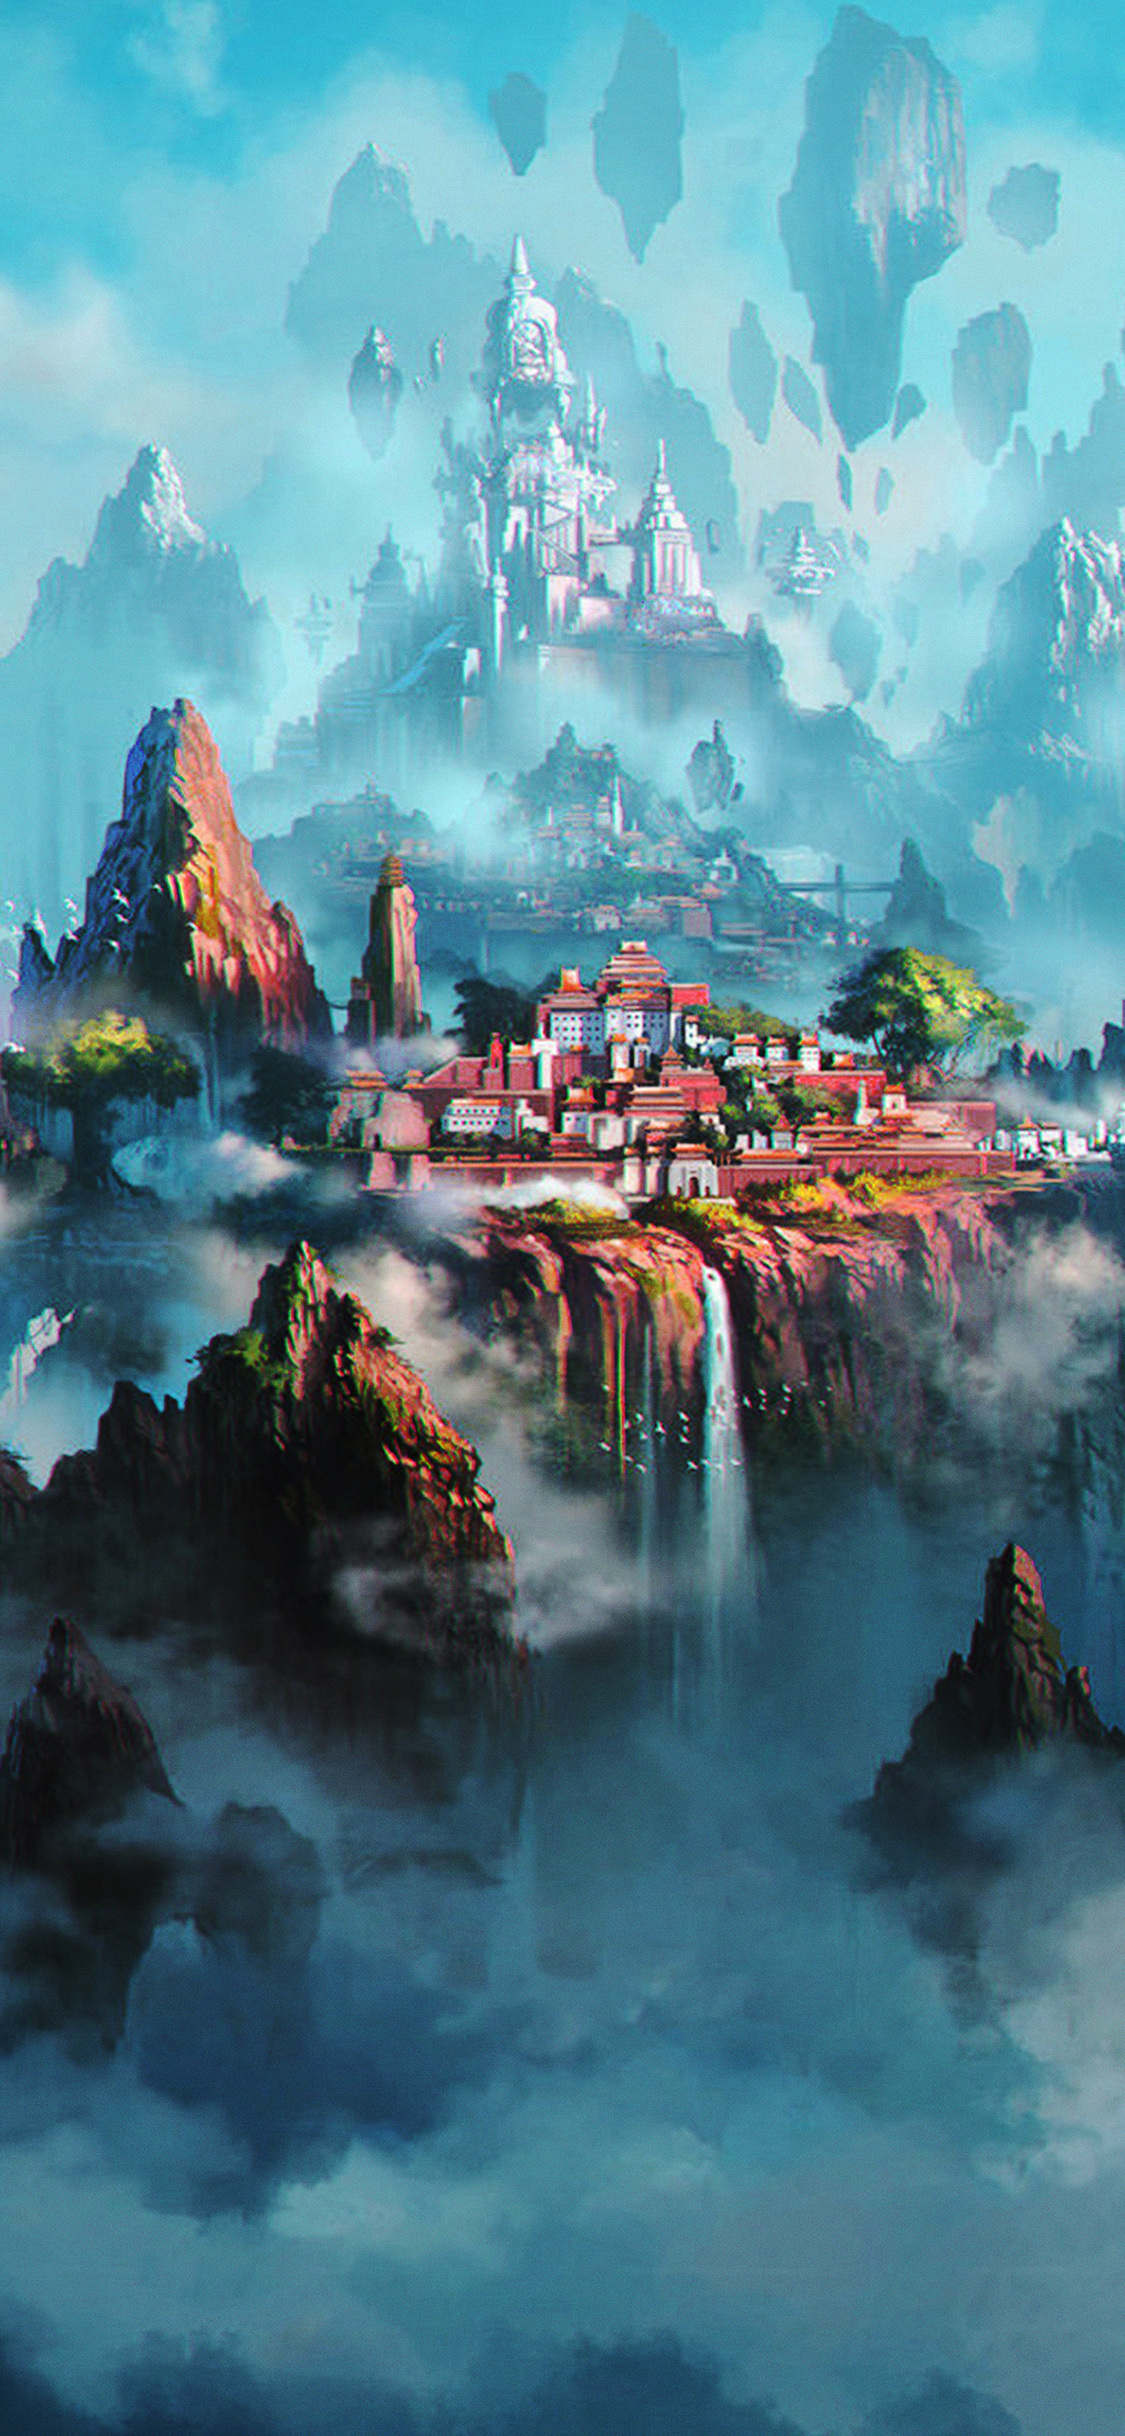 Av36 cloud town fantasy anime liang xing illustration art